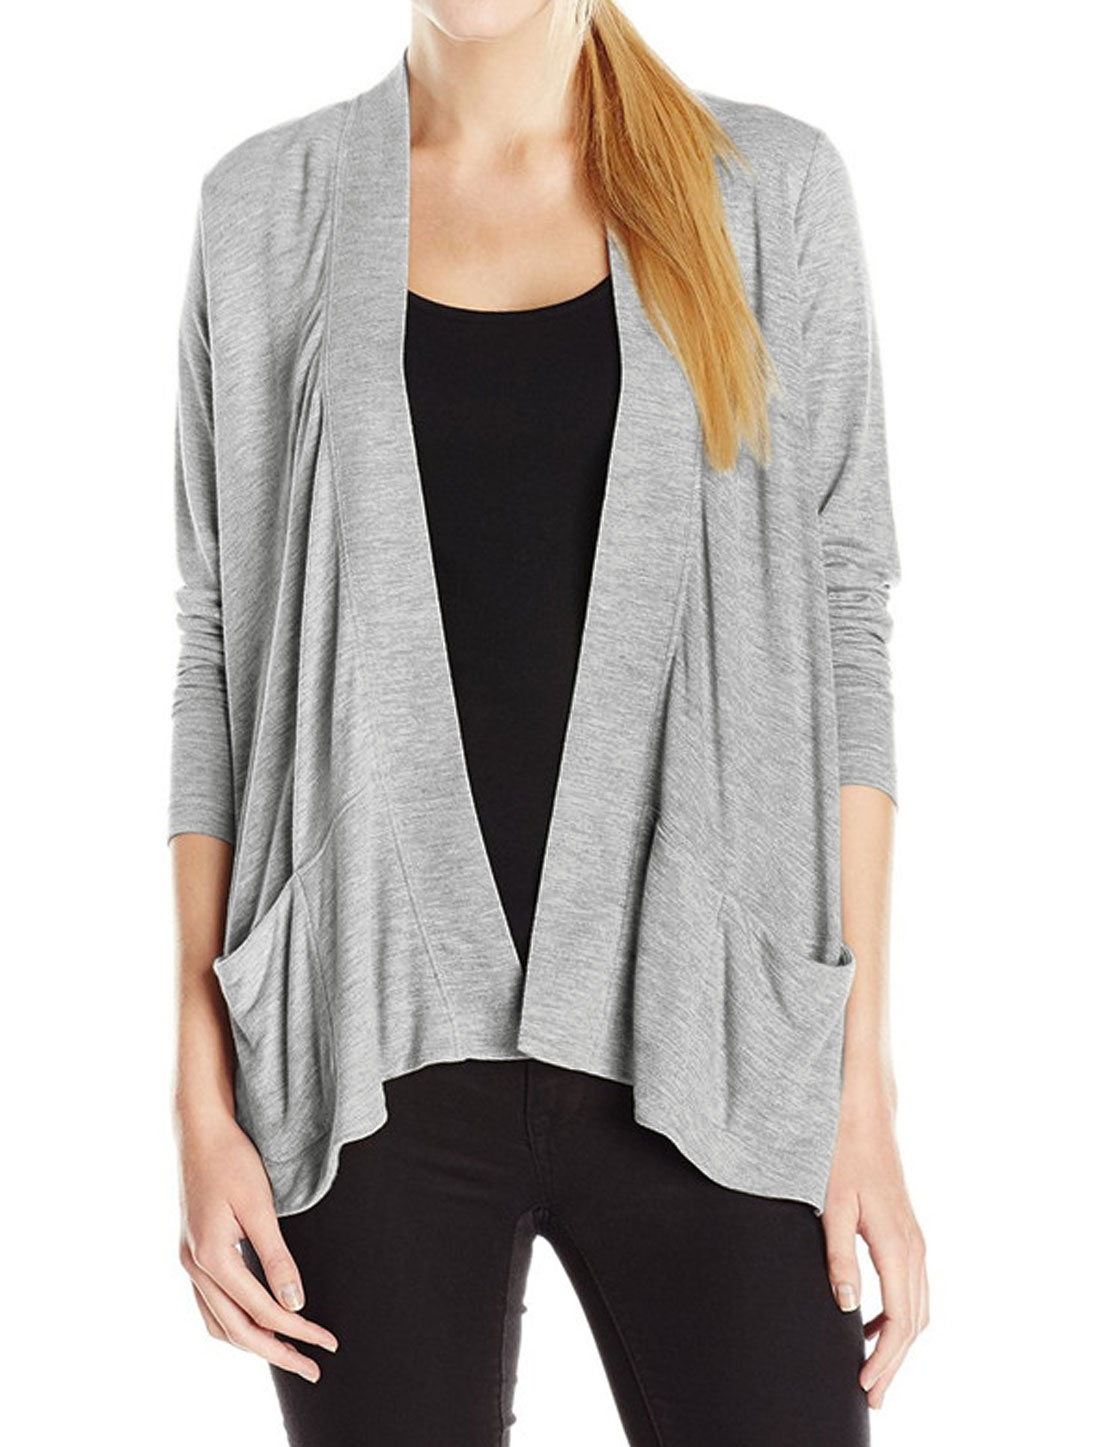 Women Long Sleeves Two Pockets Front Opening Cardigan Gray XS